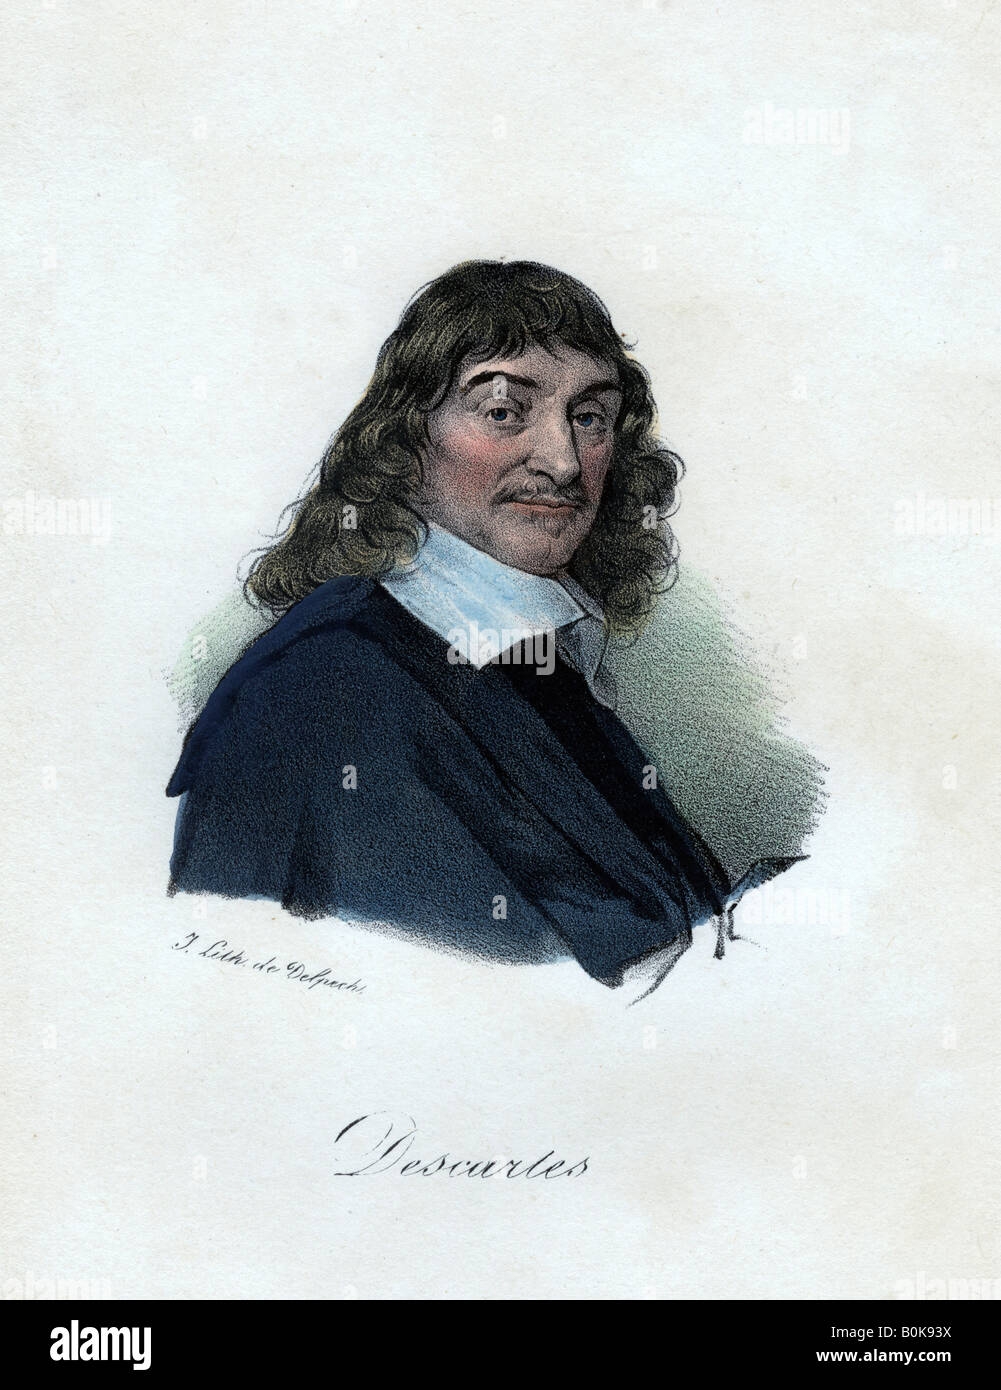 Rene Descartes, French philosopher, mathematician, and scientist, (c19th century).Artist: Delpech Stock Photo